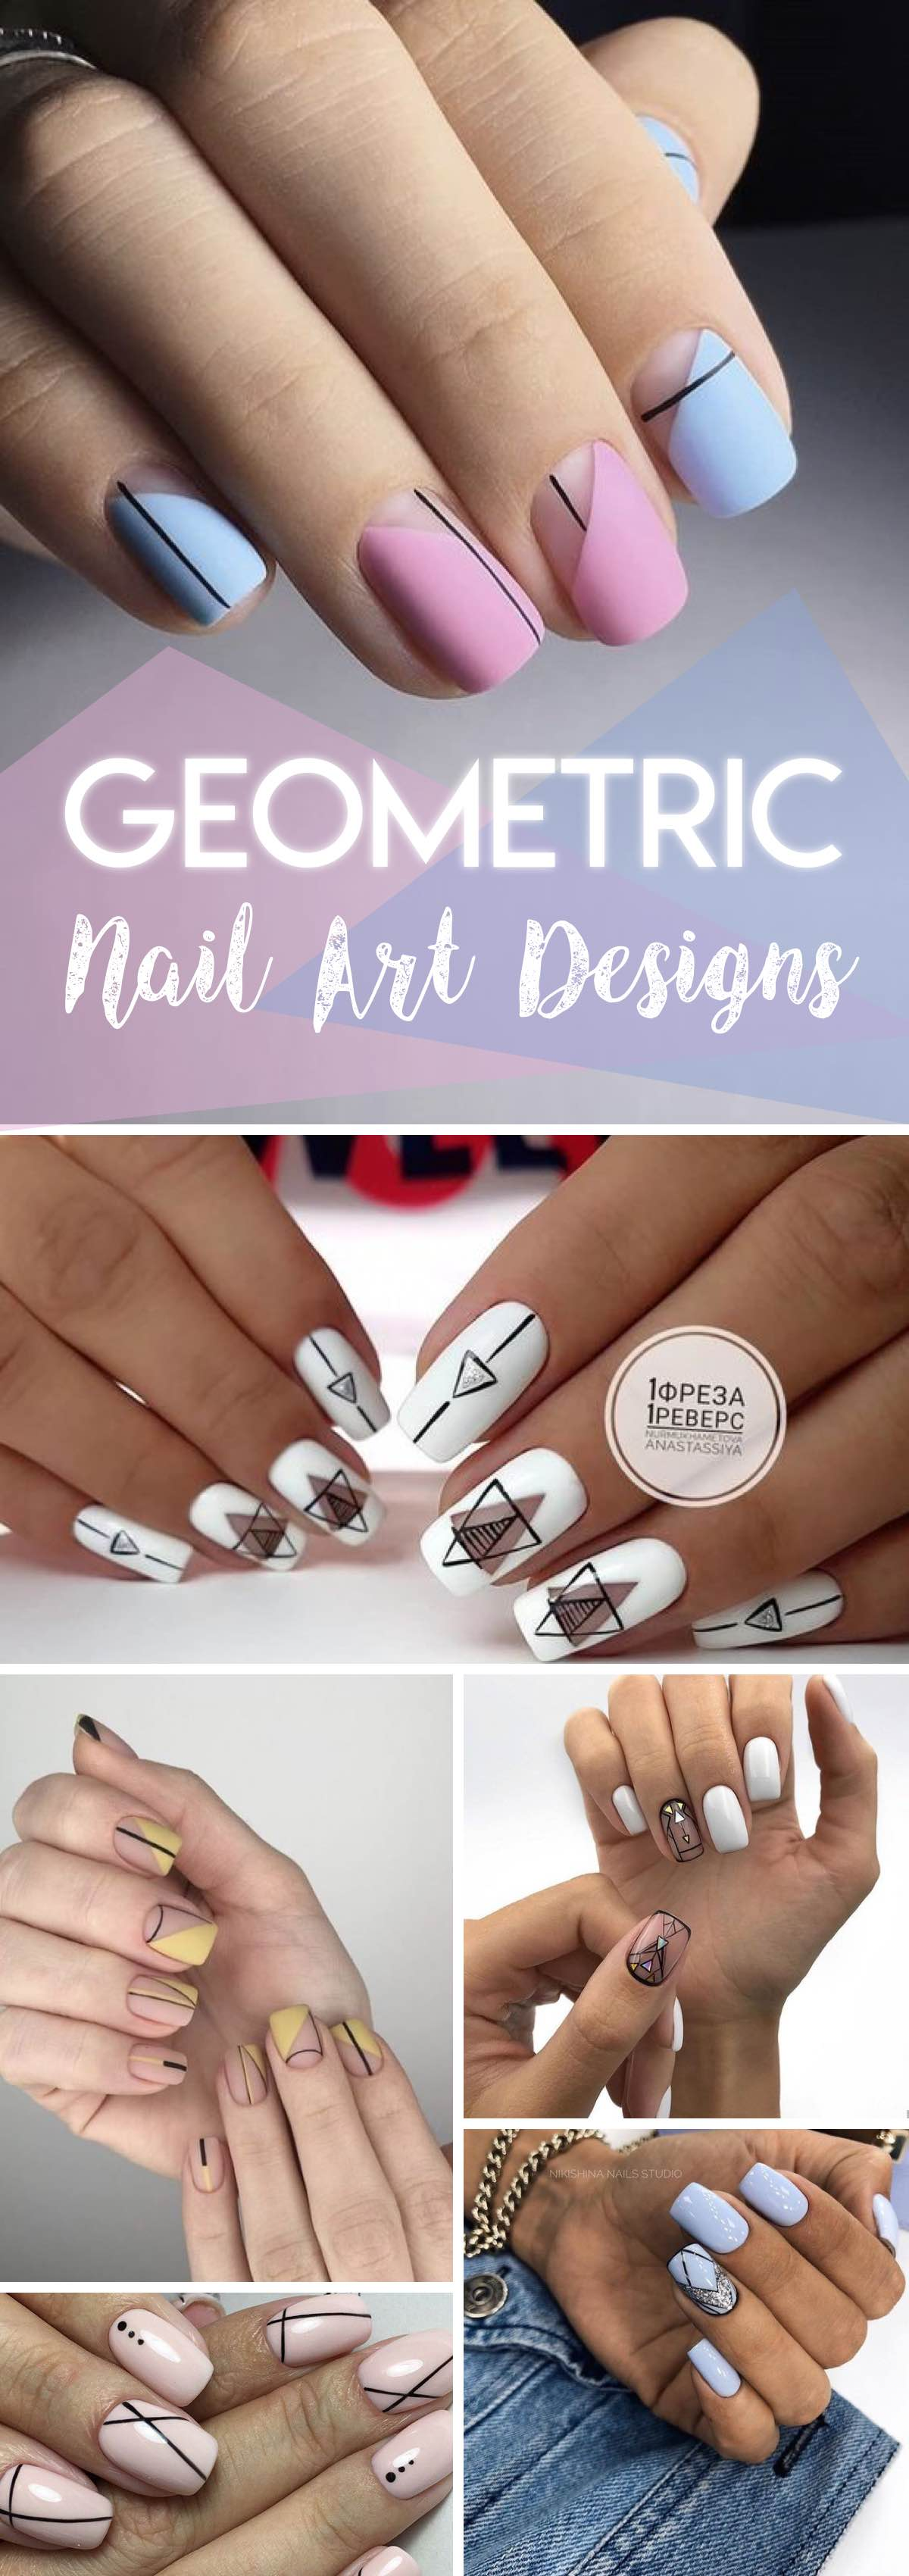 18 Uber-Cool Geometric Nail Art Designs Taking Everyone's Breath Away!